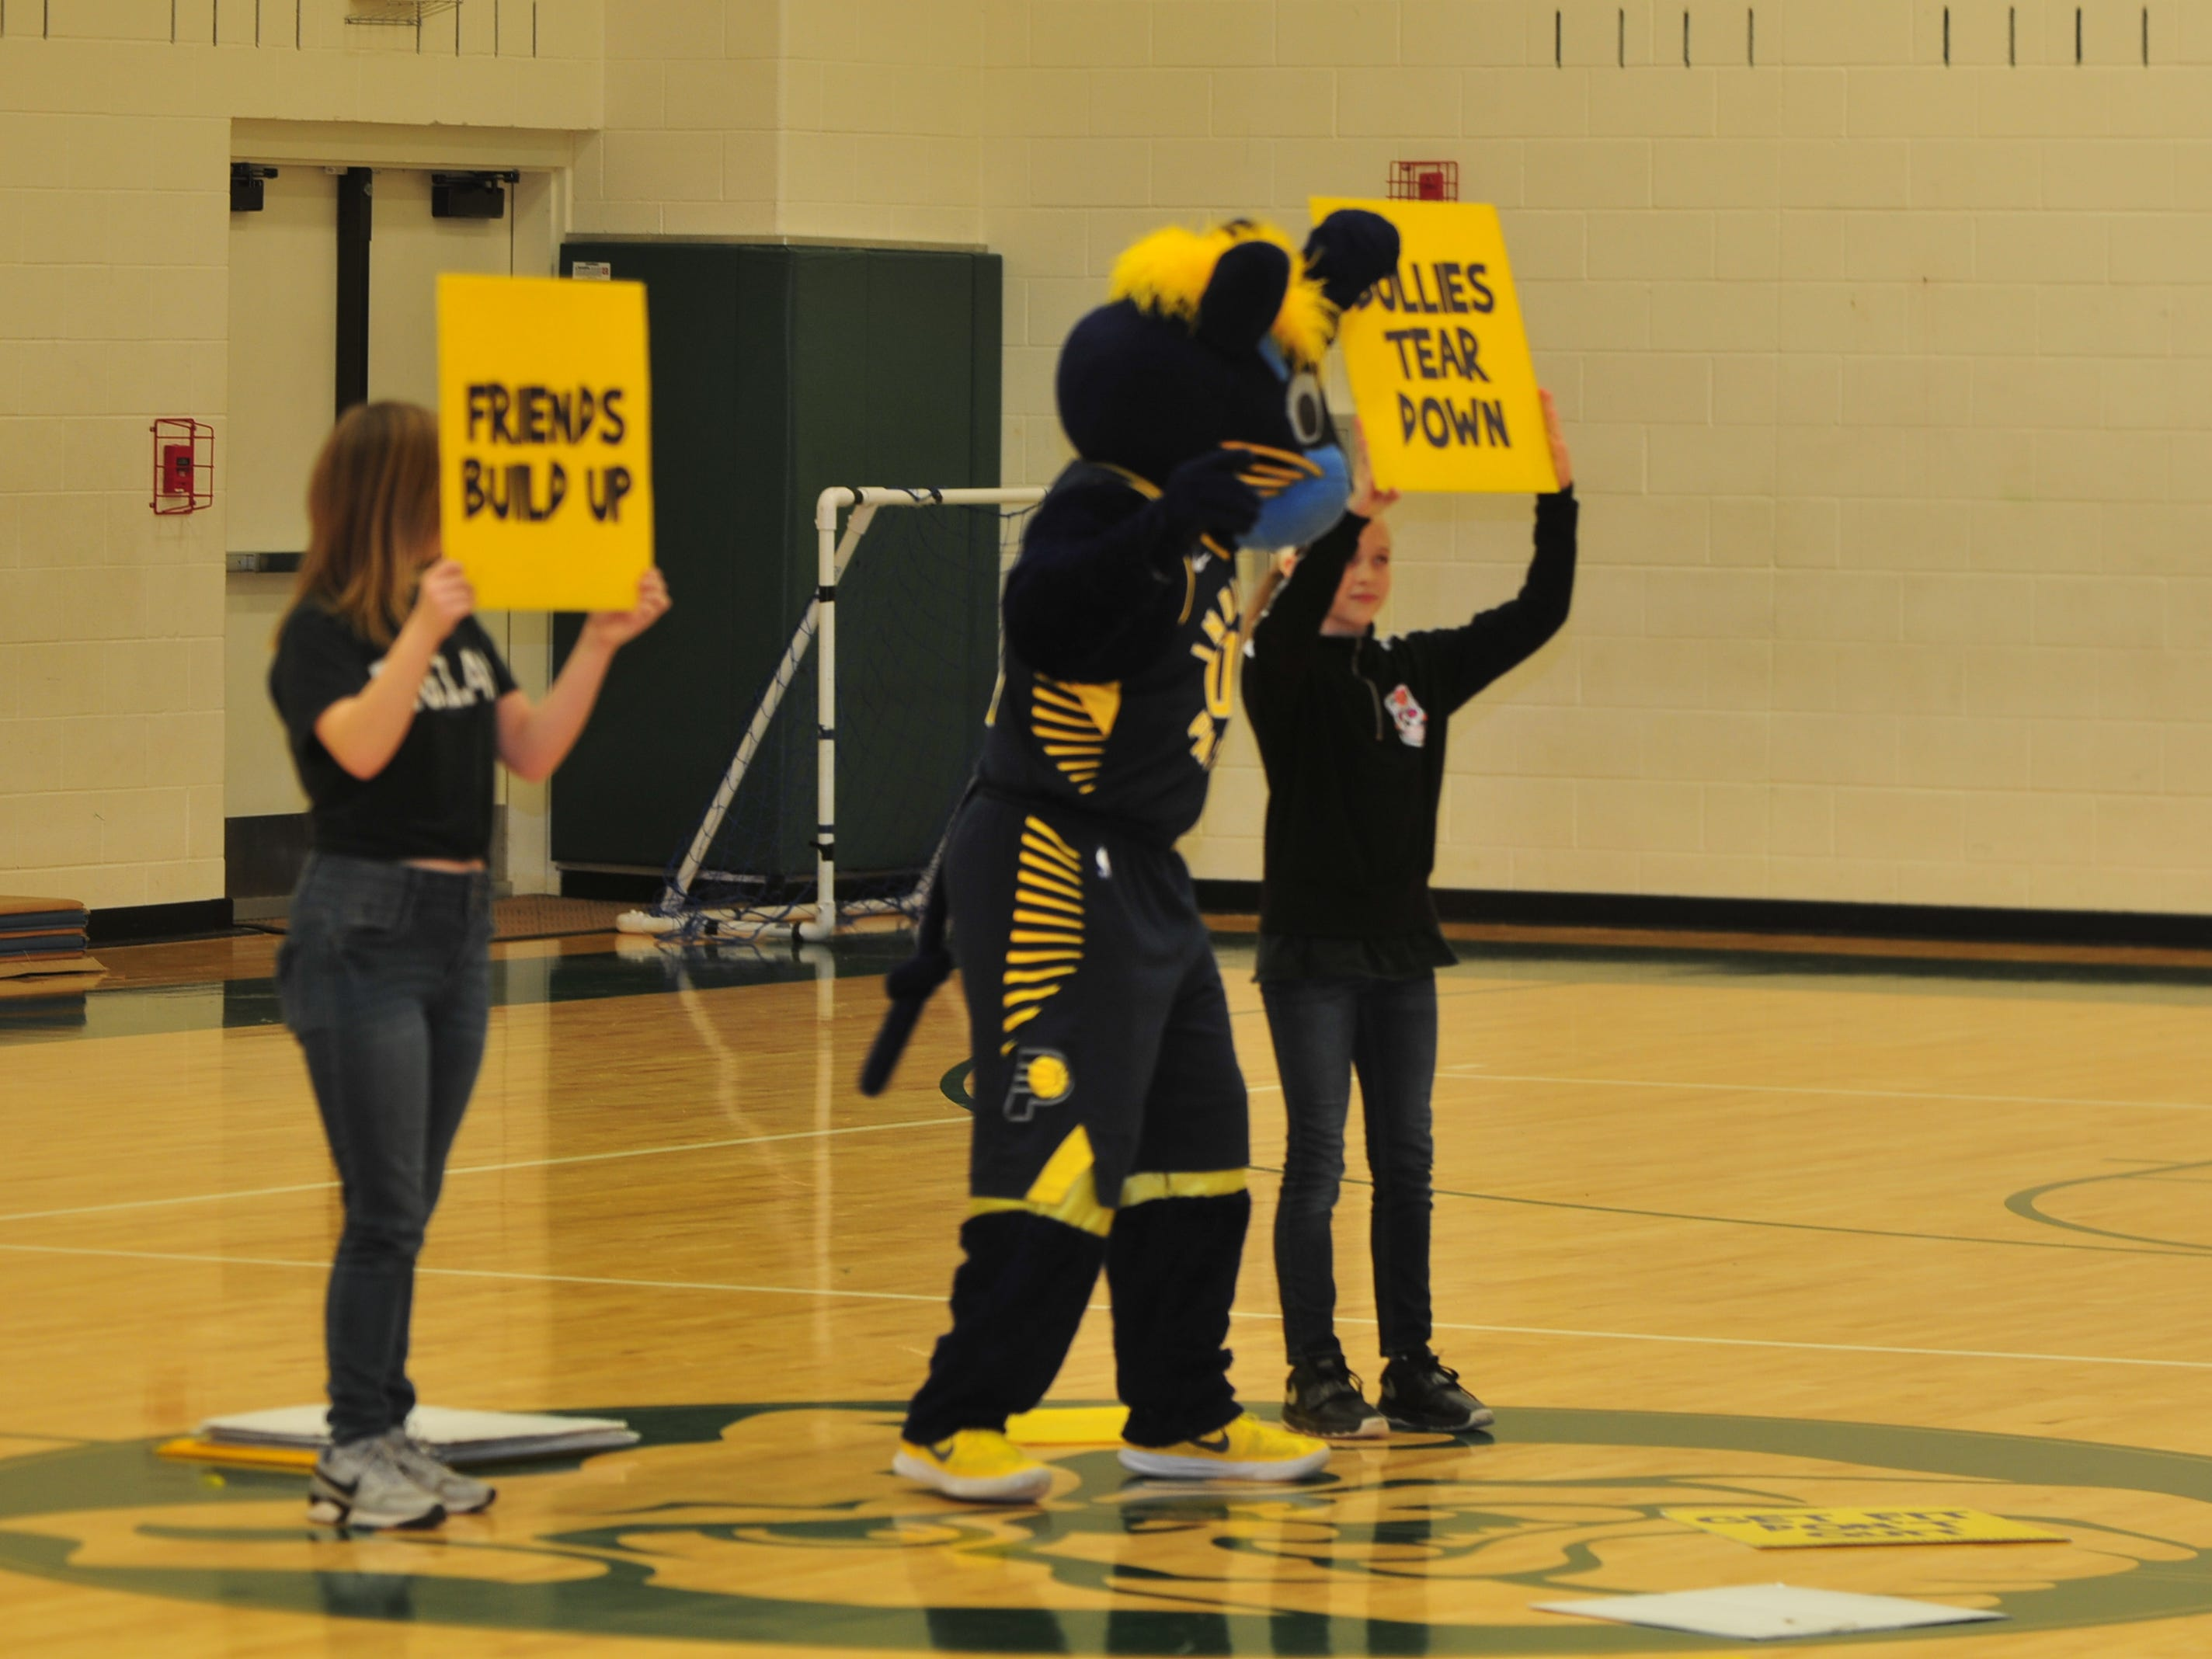 Boomer urges Dennis Intermediate School students to build each other up rather than bully each other during a Wednesday program.